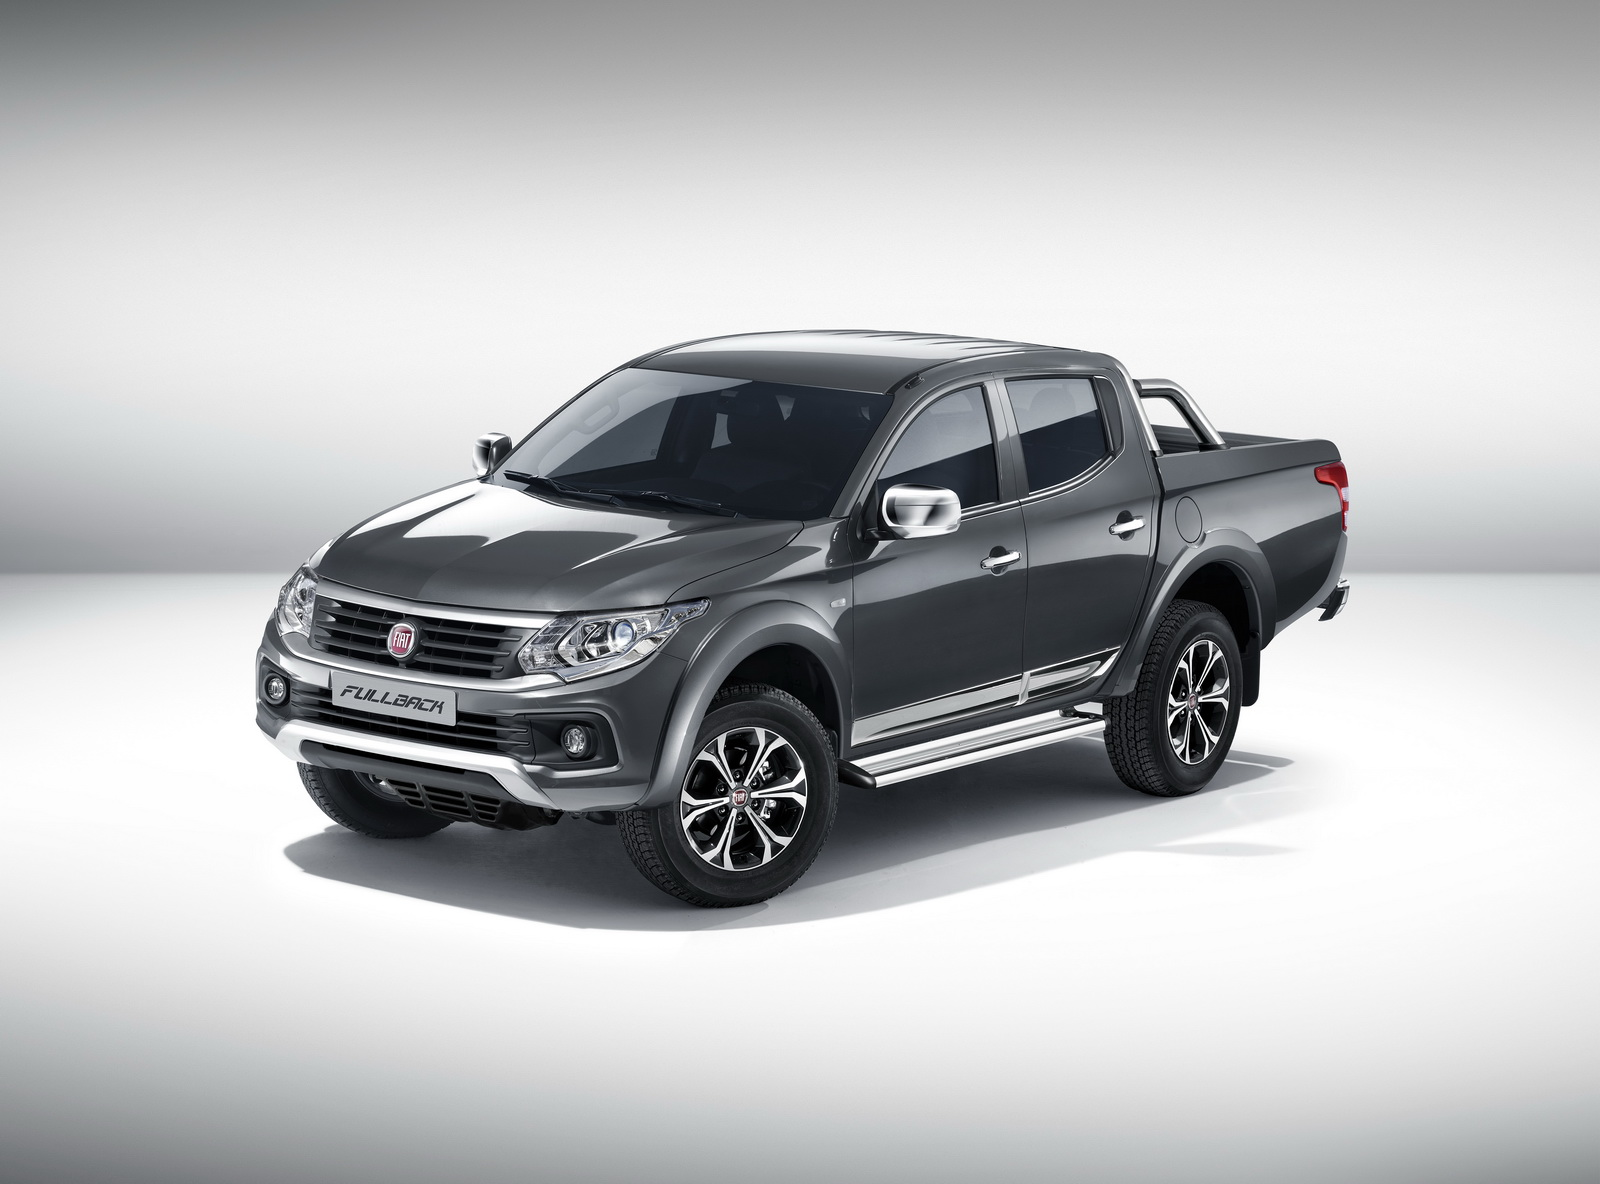 Fiat Unveils New Fullback Pickup Truck At The Dubai Motor Show Carscoops